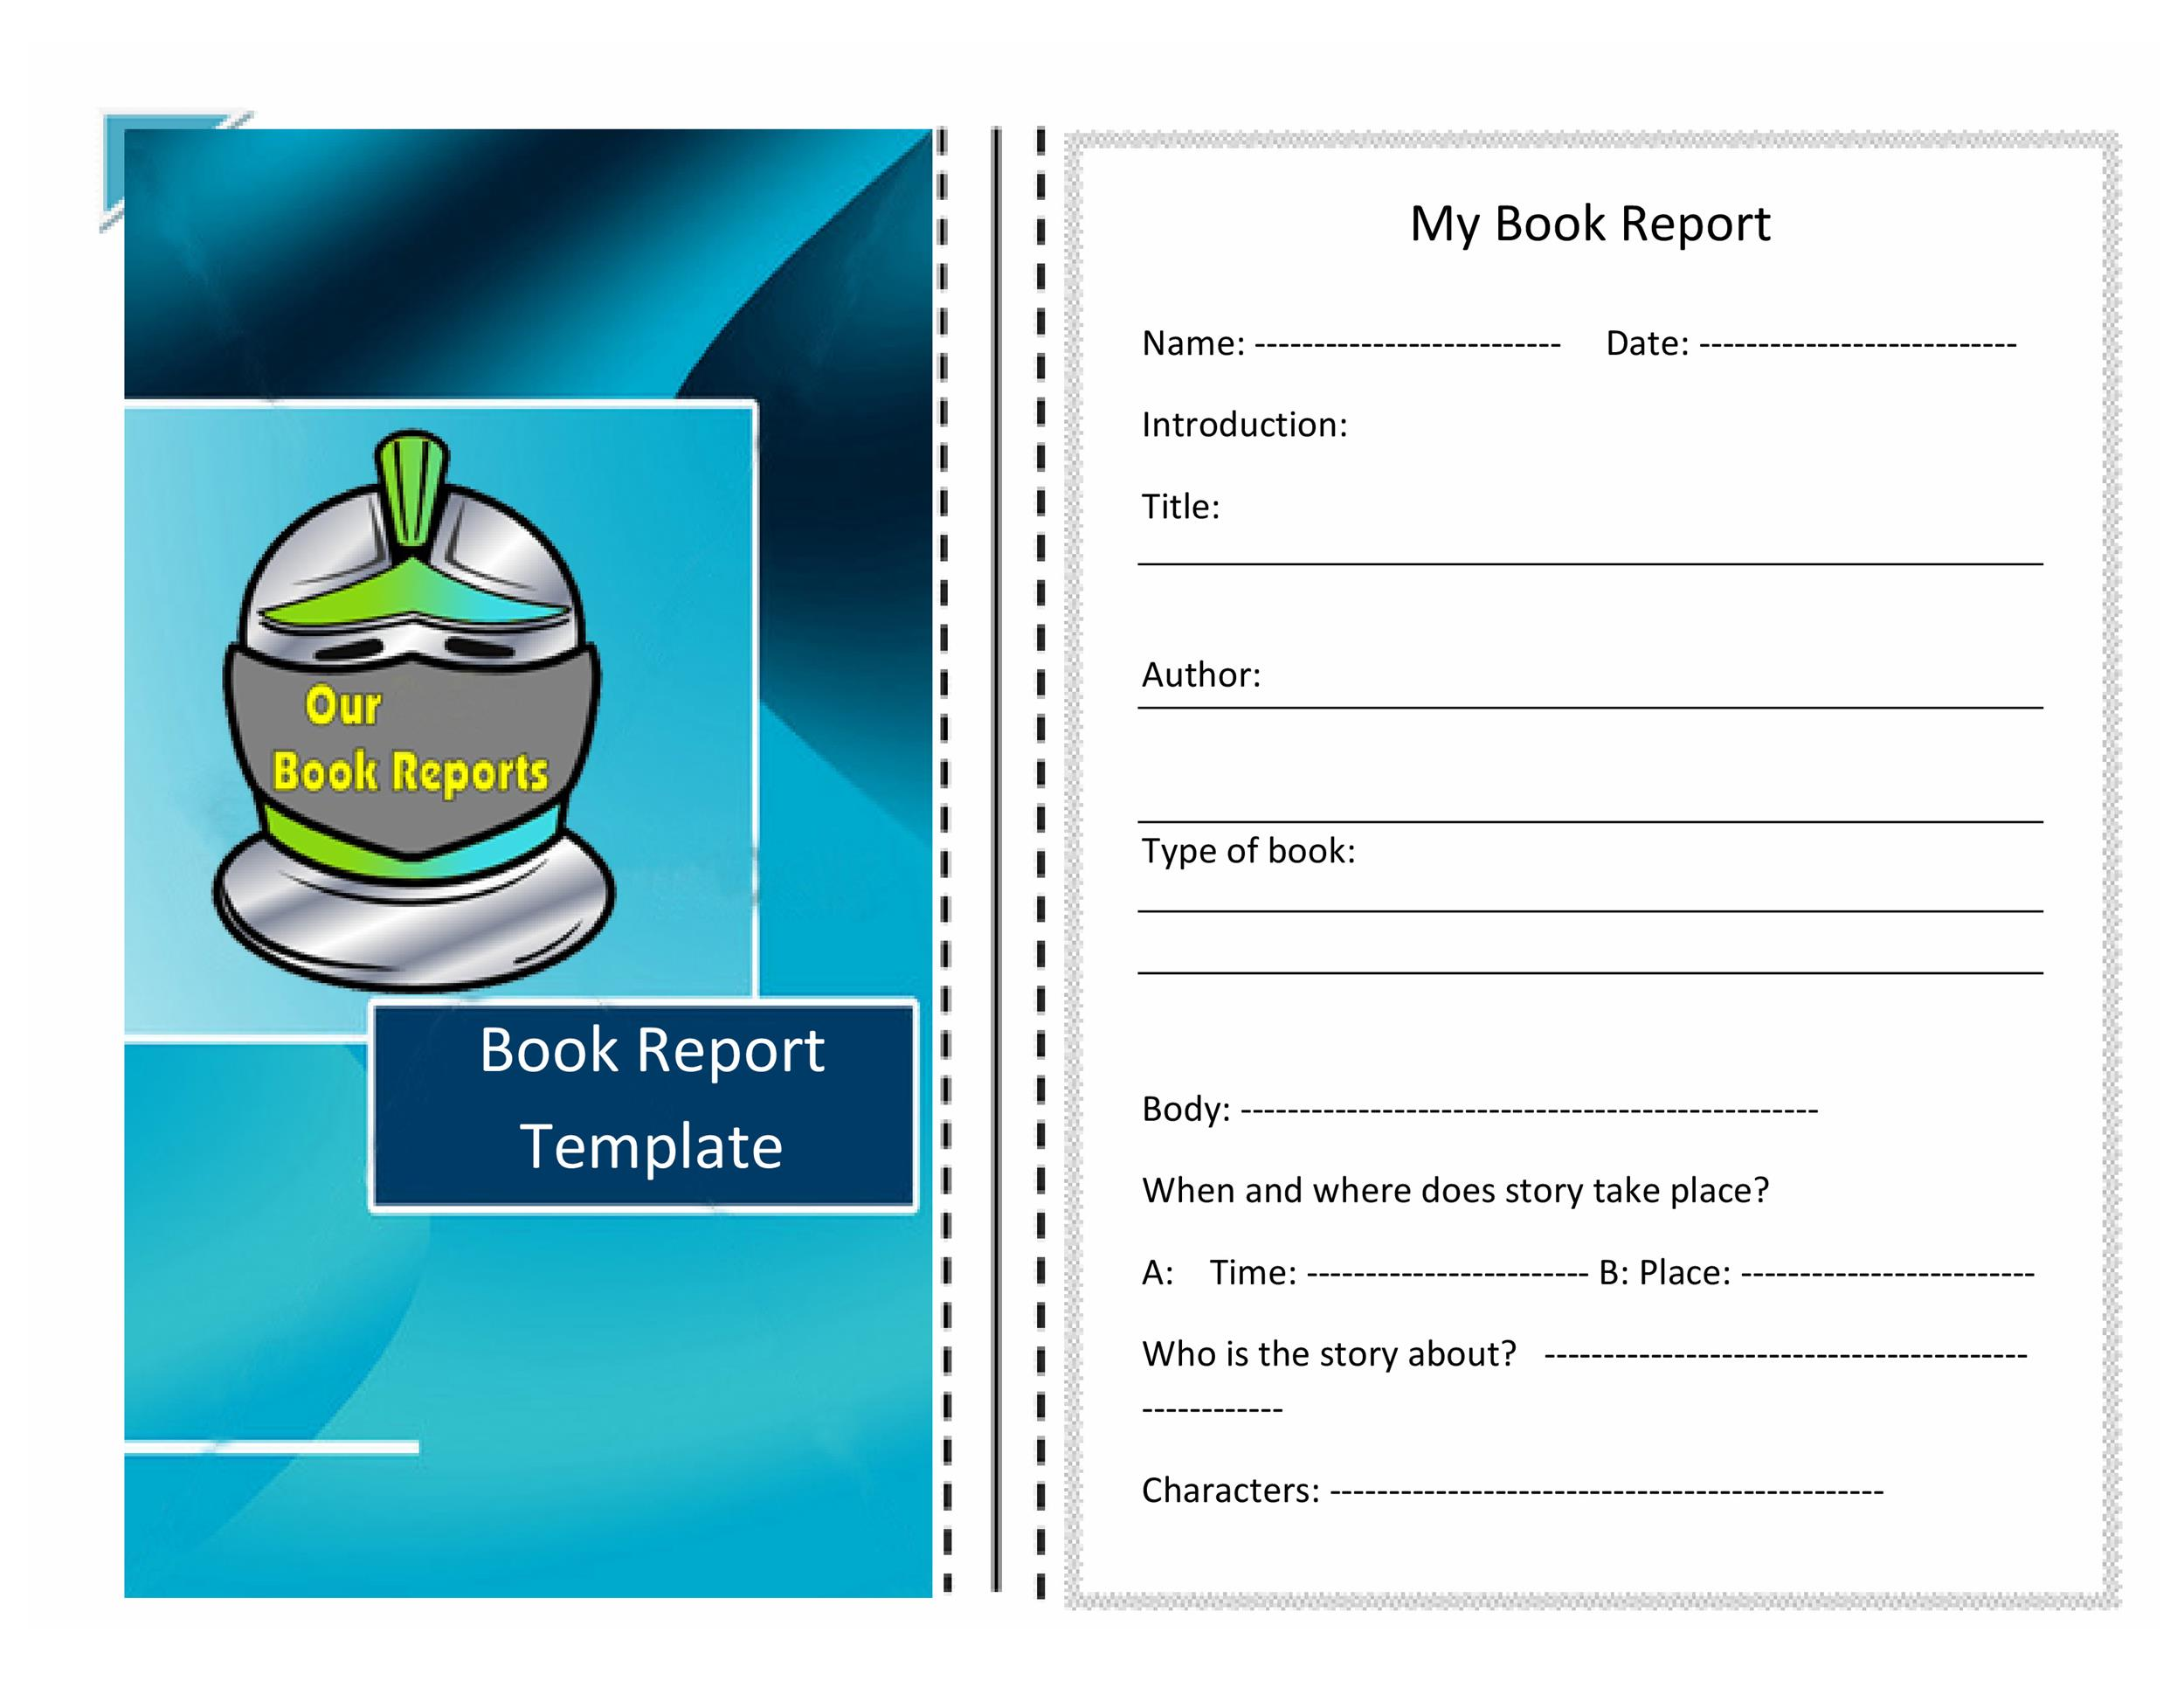 Free Book Report Template 07